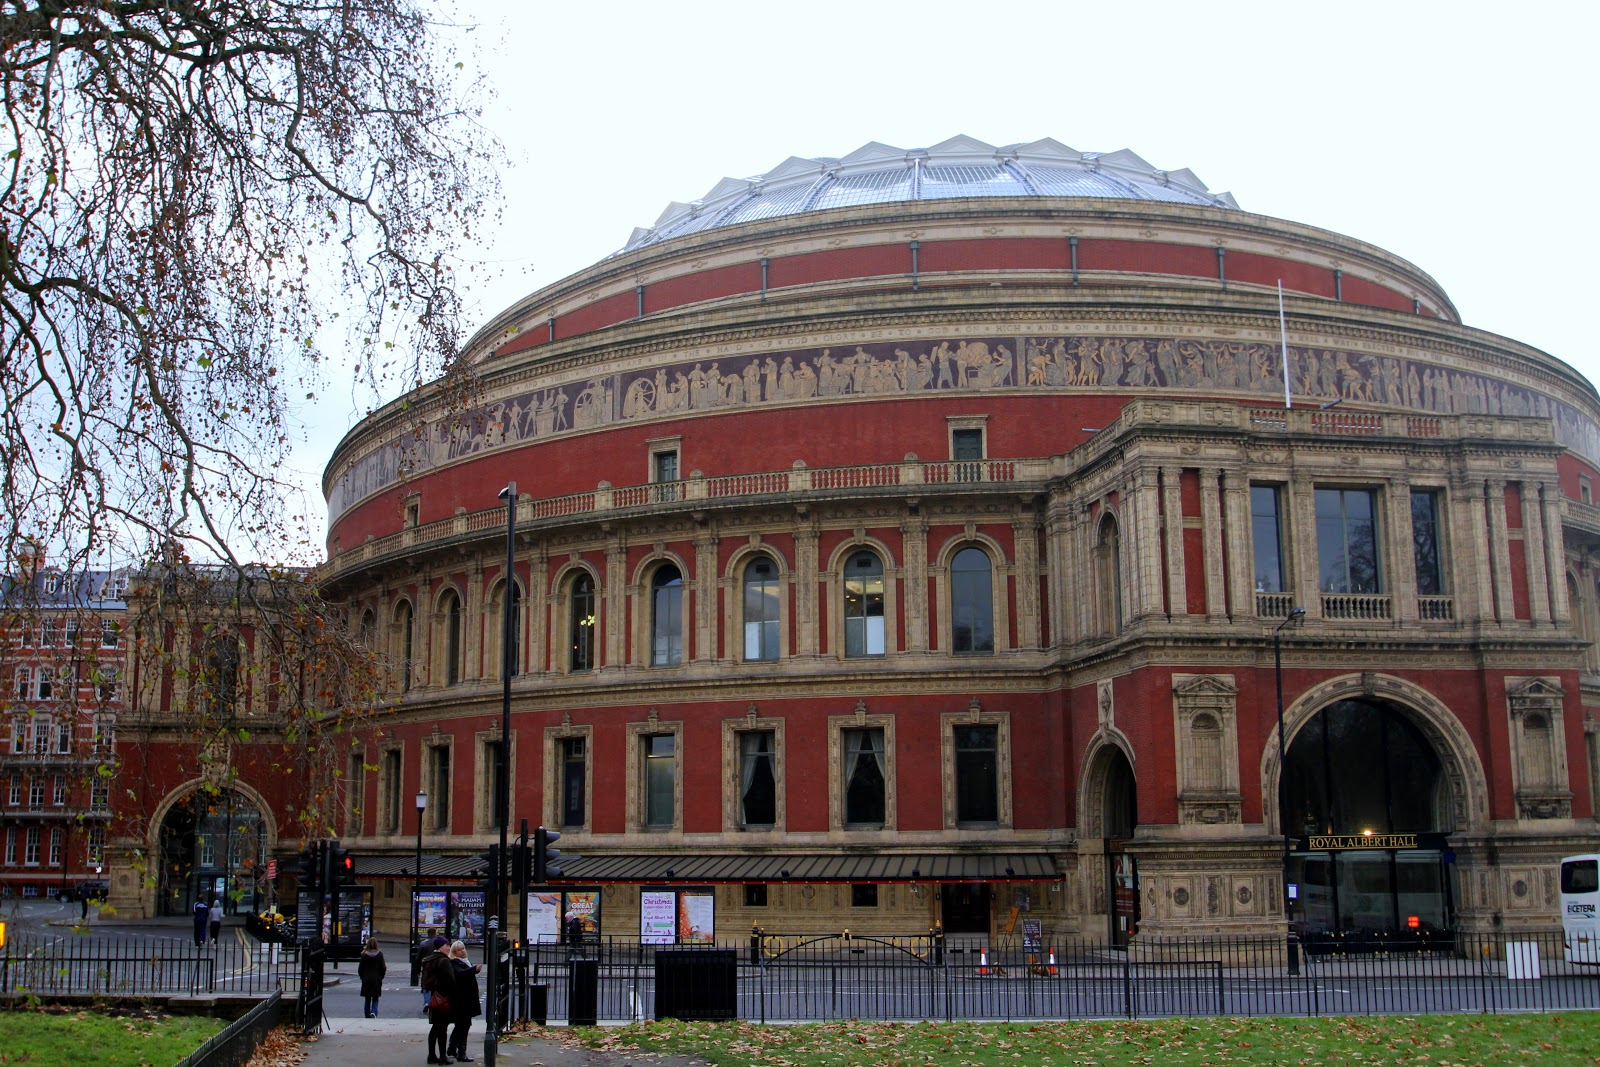 An architectural pilgrimage royal albert hall for Door 12 royal albert hall